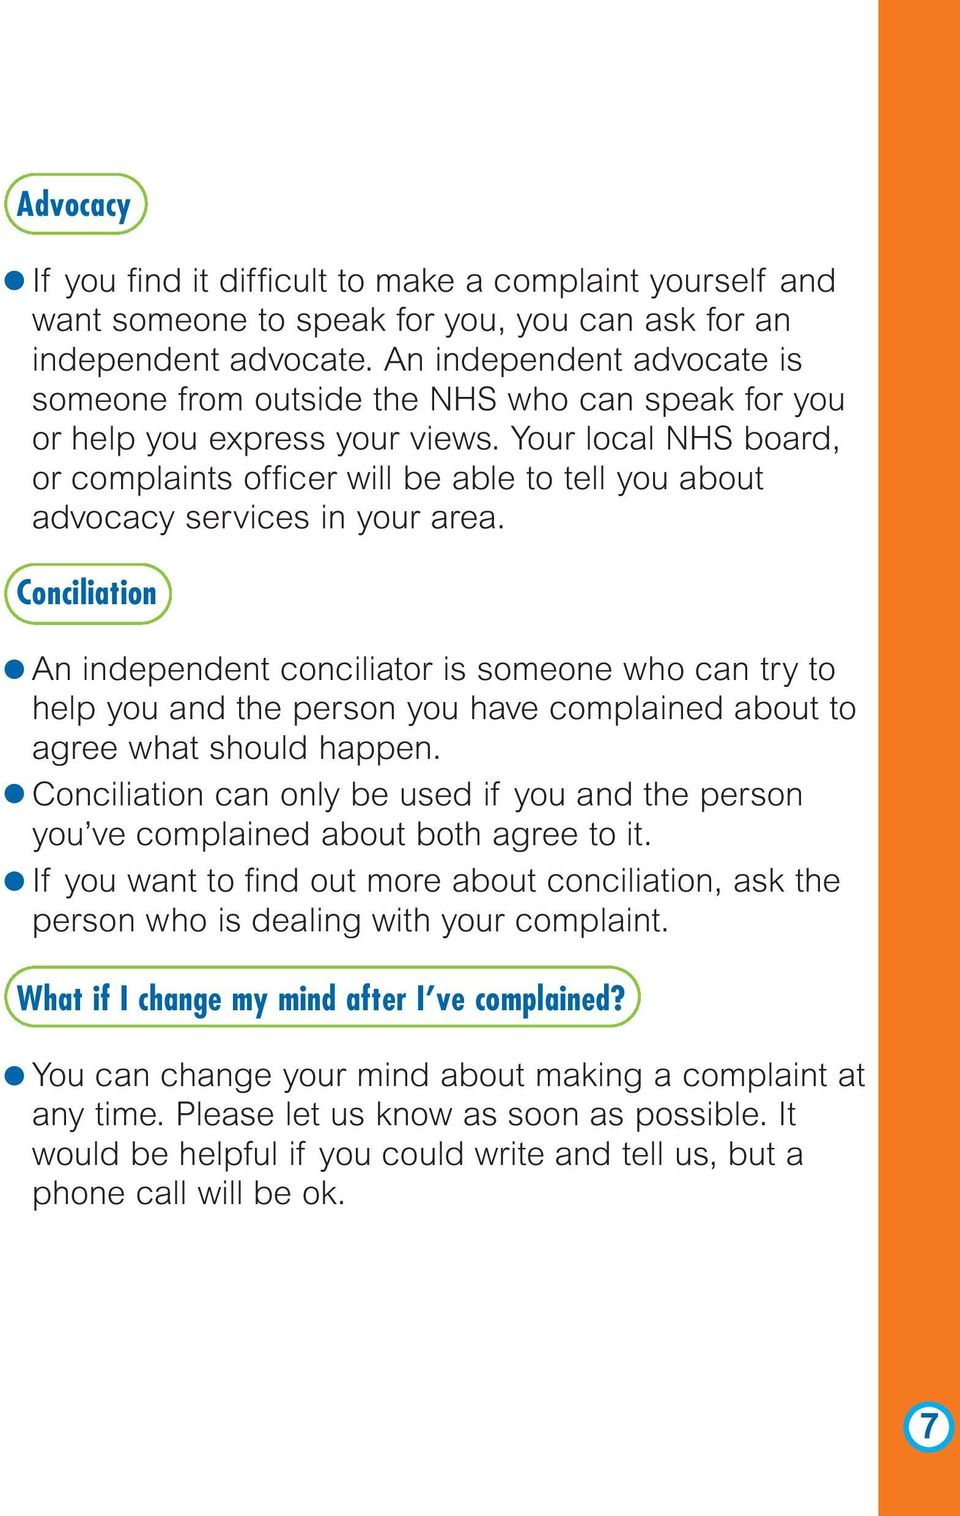 Your local NHS board, or complaints officer will be able to tell you about advocacy services in your area.